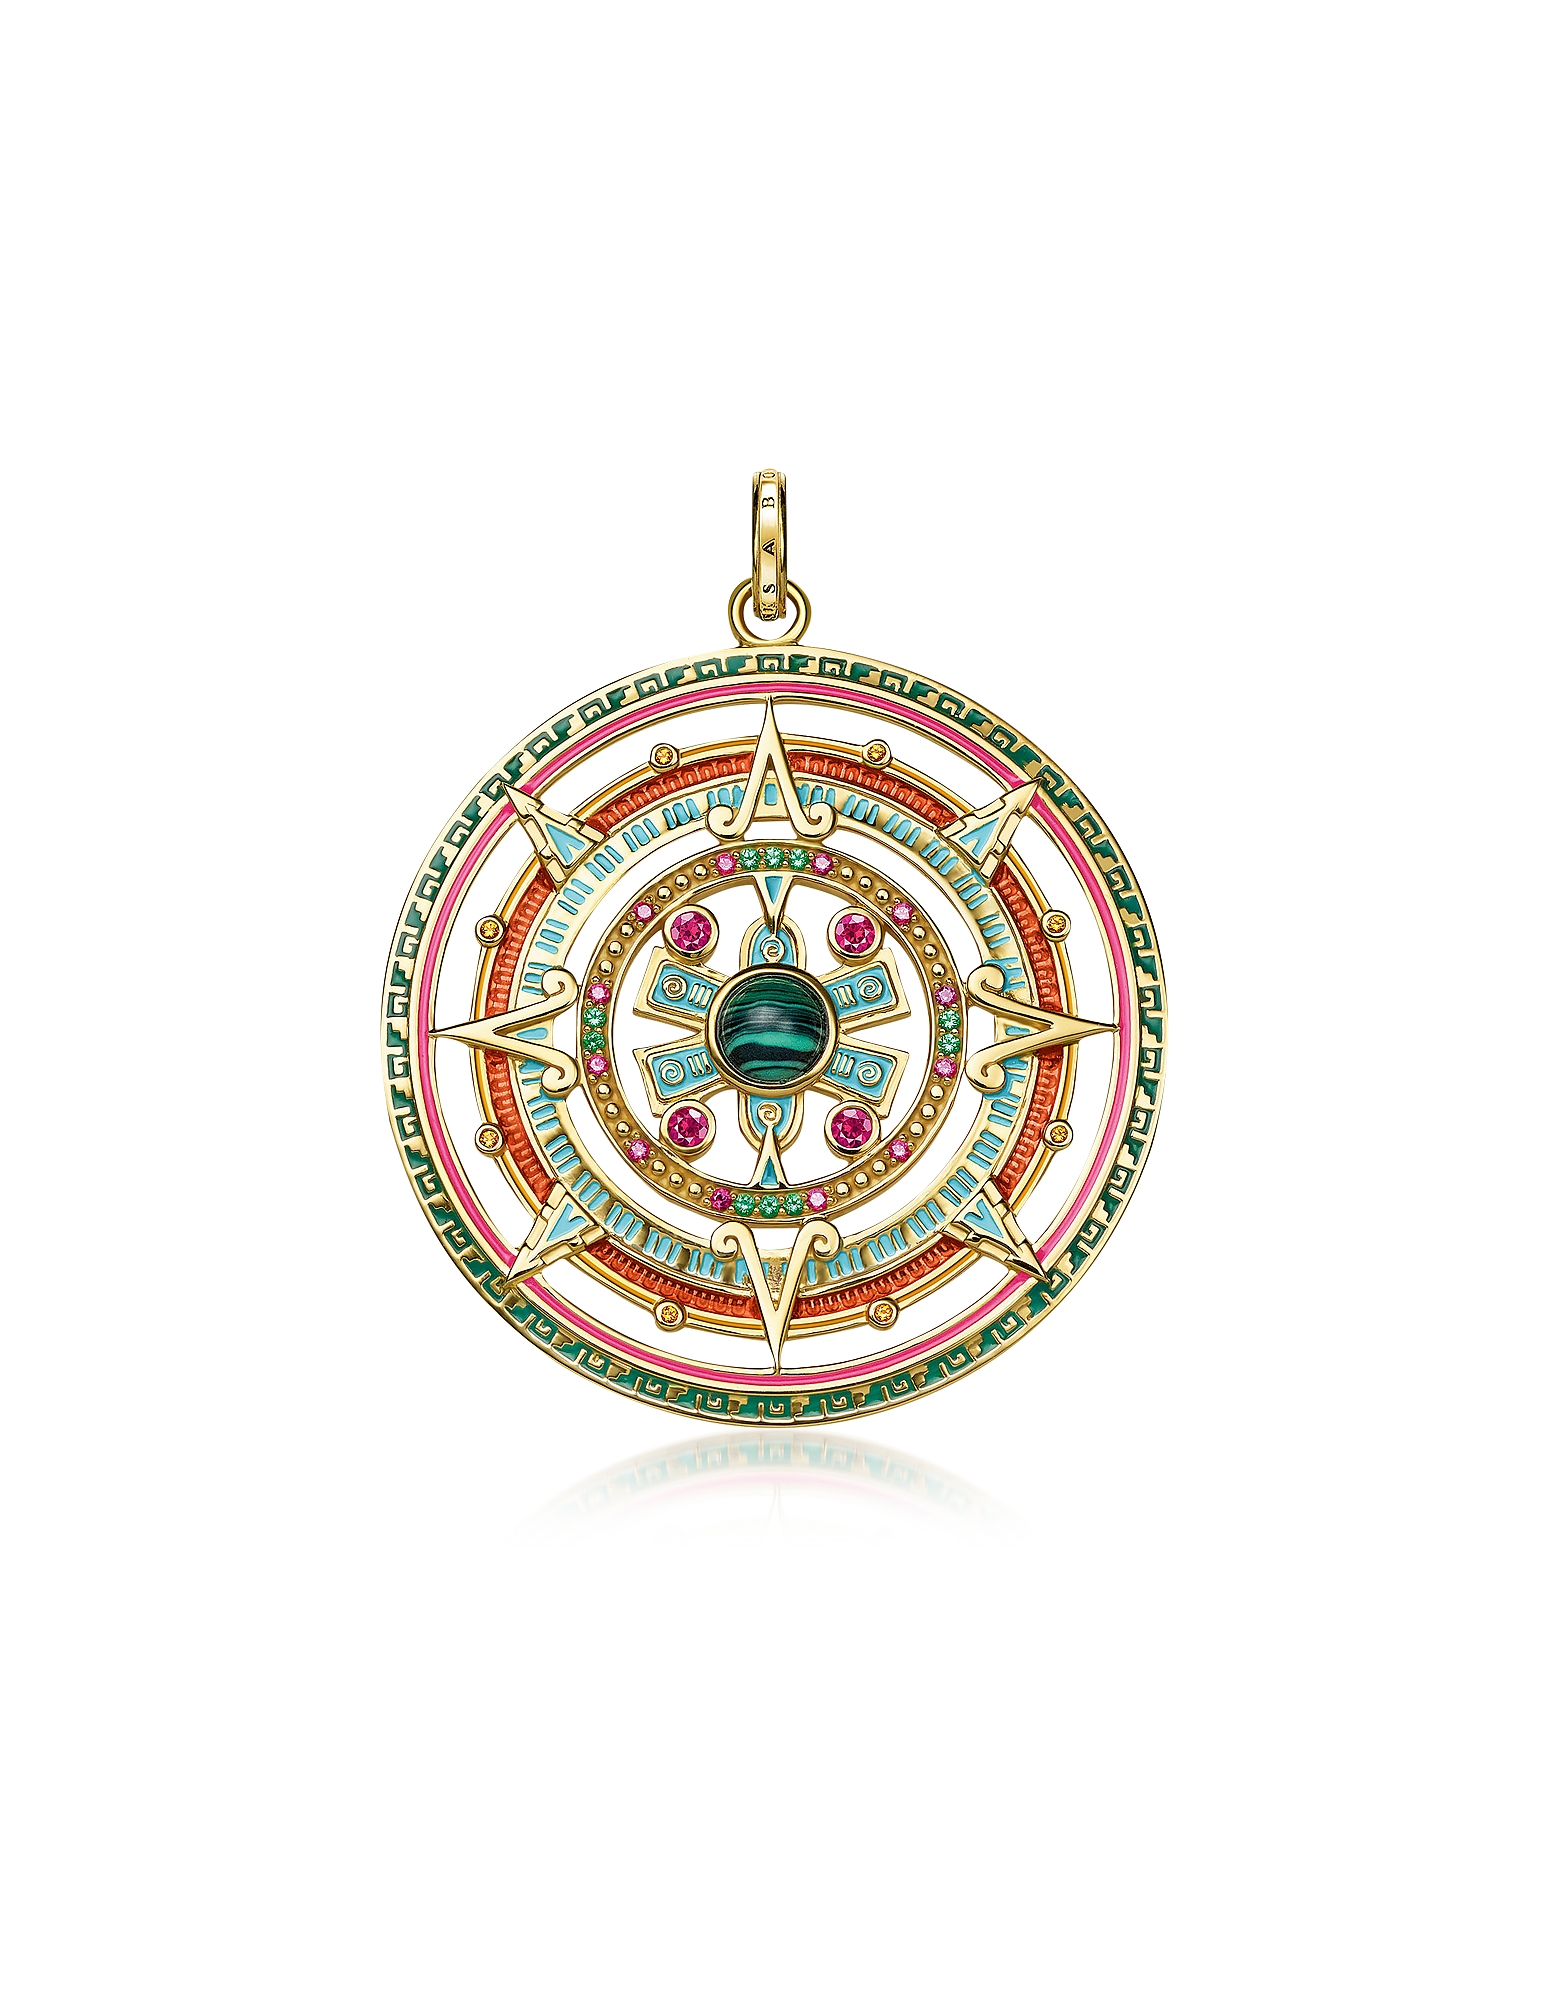 Thomas Sabo Necklaces, Gold Plated Sterling Silver, Enamel and Glass-ceramic Stones Amulet Pendant